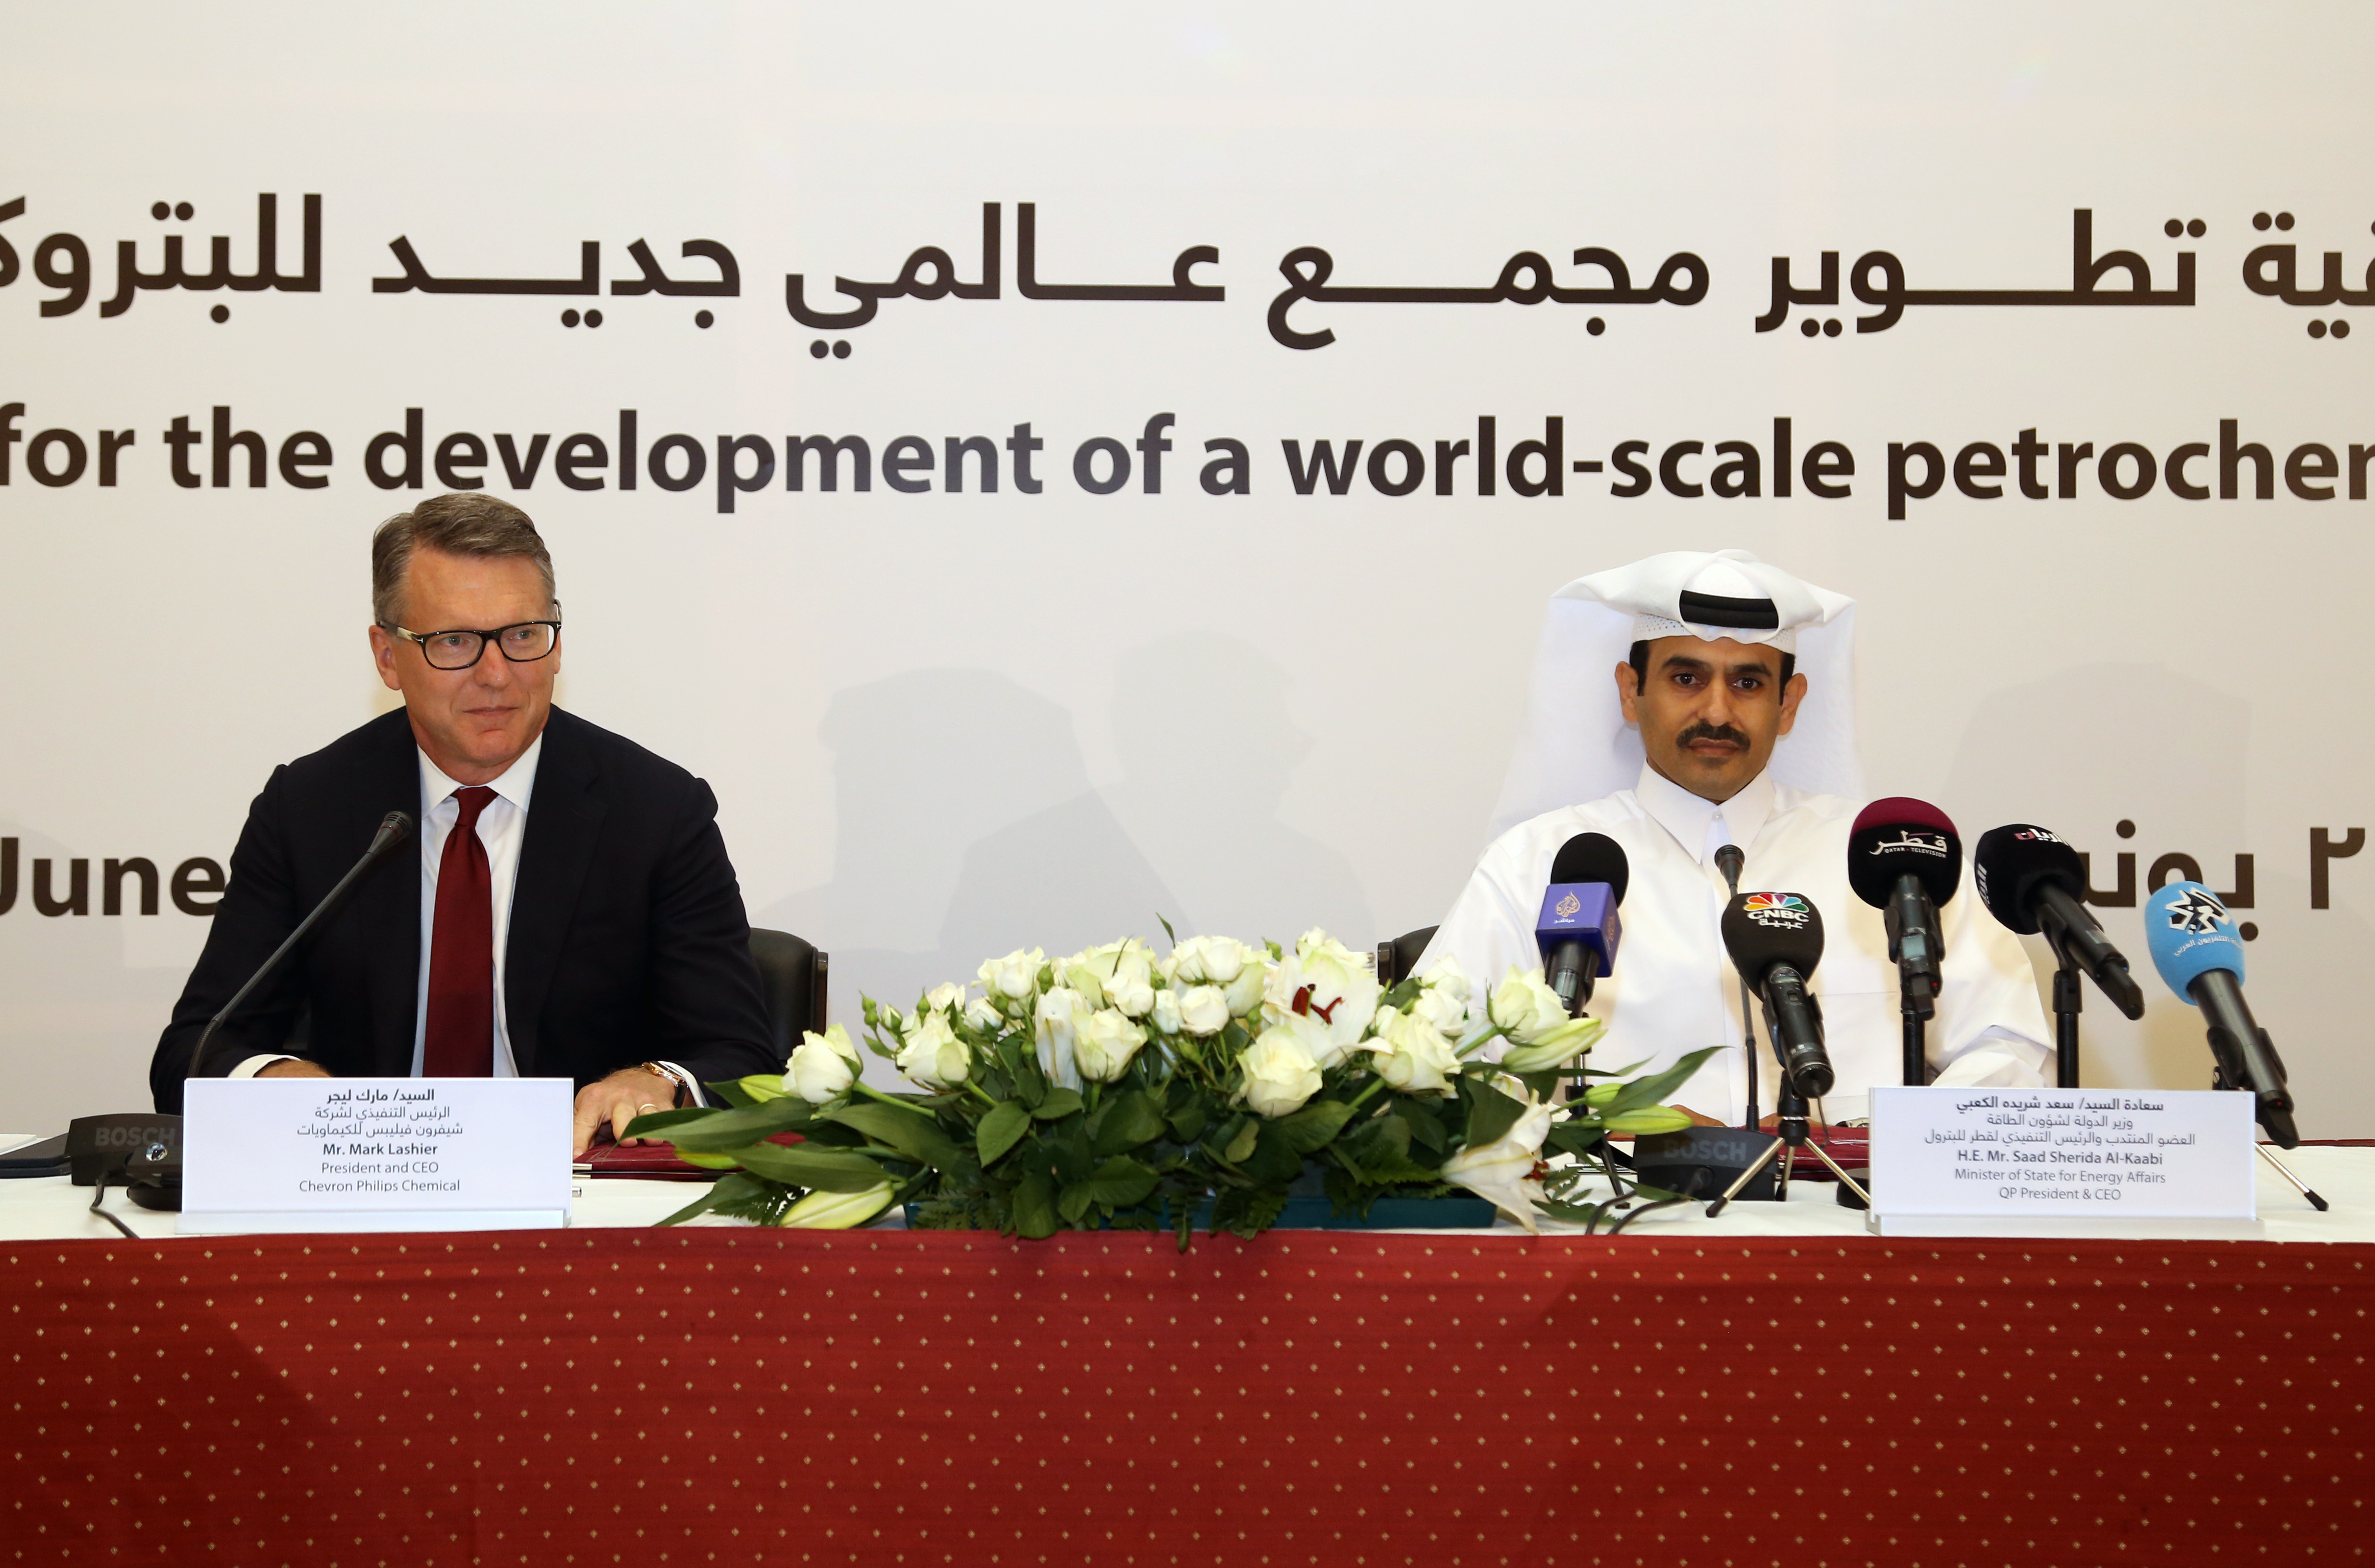 Chevron Phillips Chemical and Qatar Petroleum Sign Agreement to Develop Petrochemical Complex in Qatar